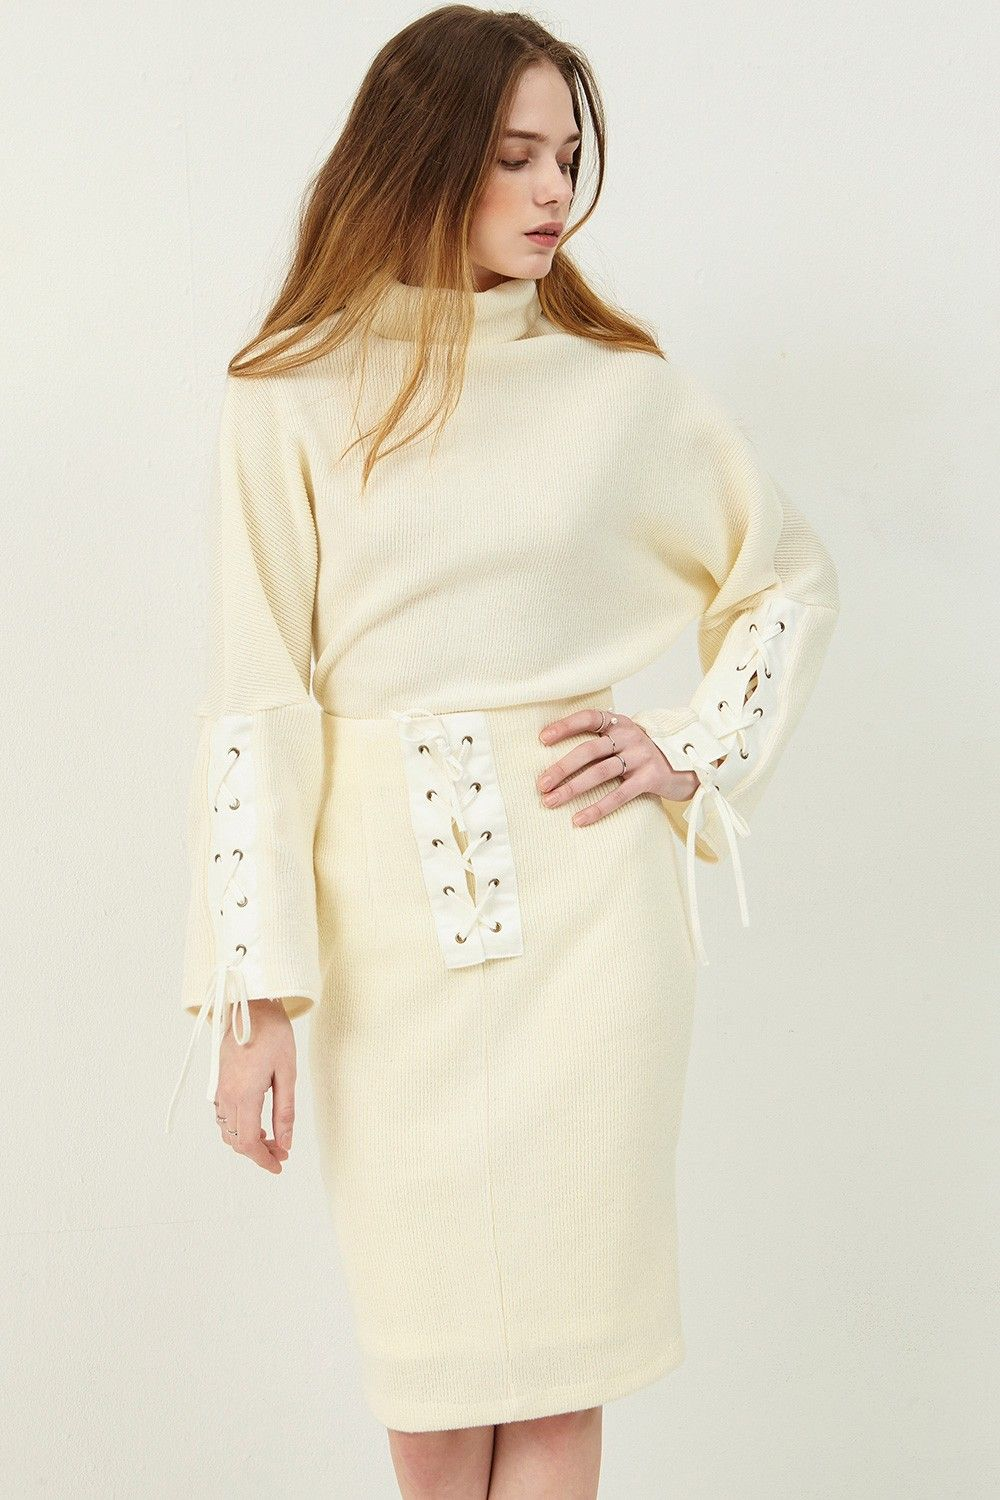 Dolly eyelet knit >>Discover the latest fashion trends online at ...